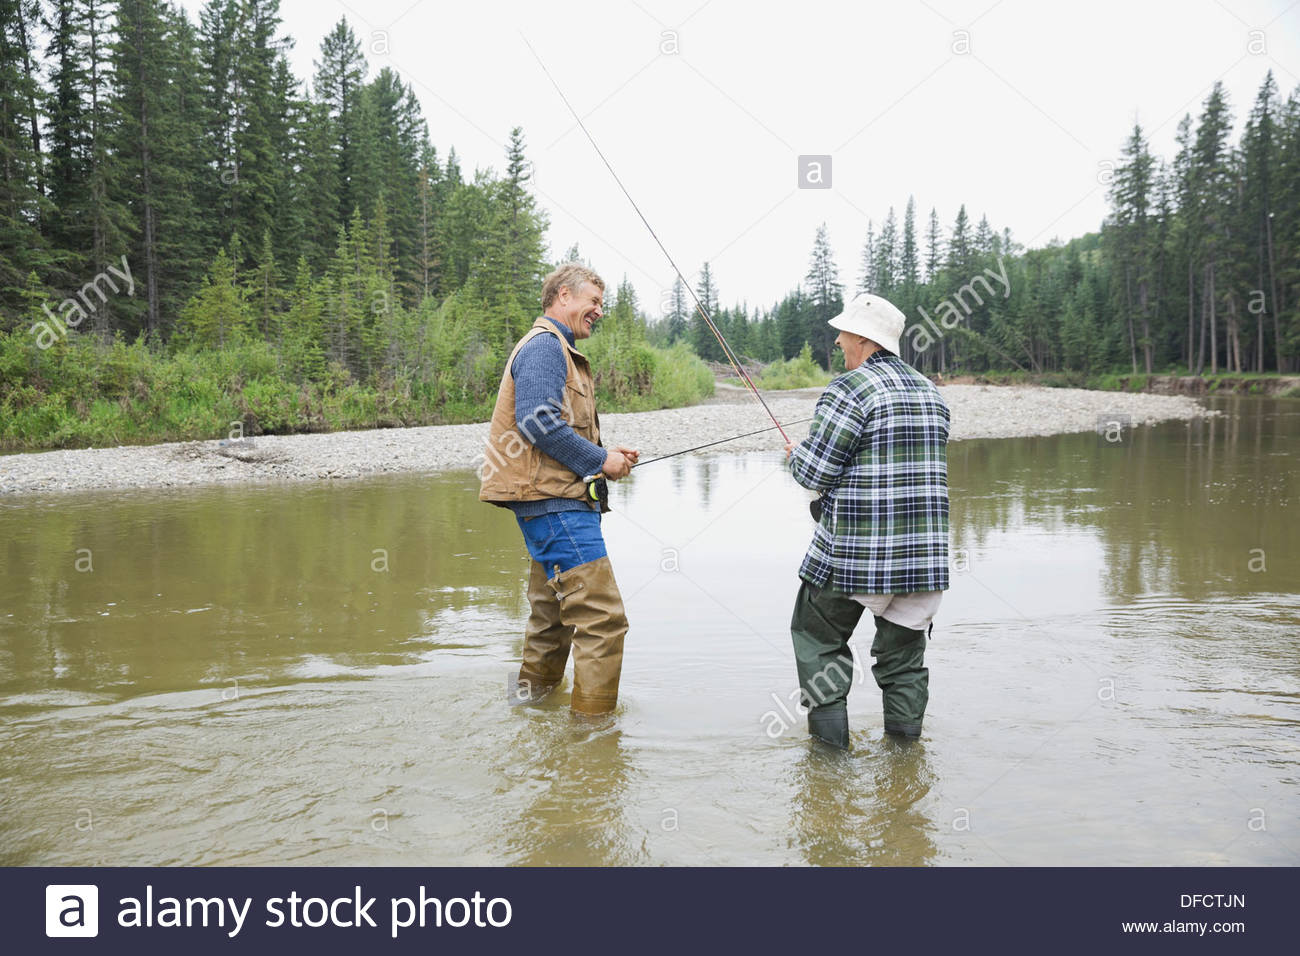 Father and son with fishing rods standing in river - Stock Image